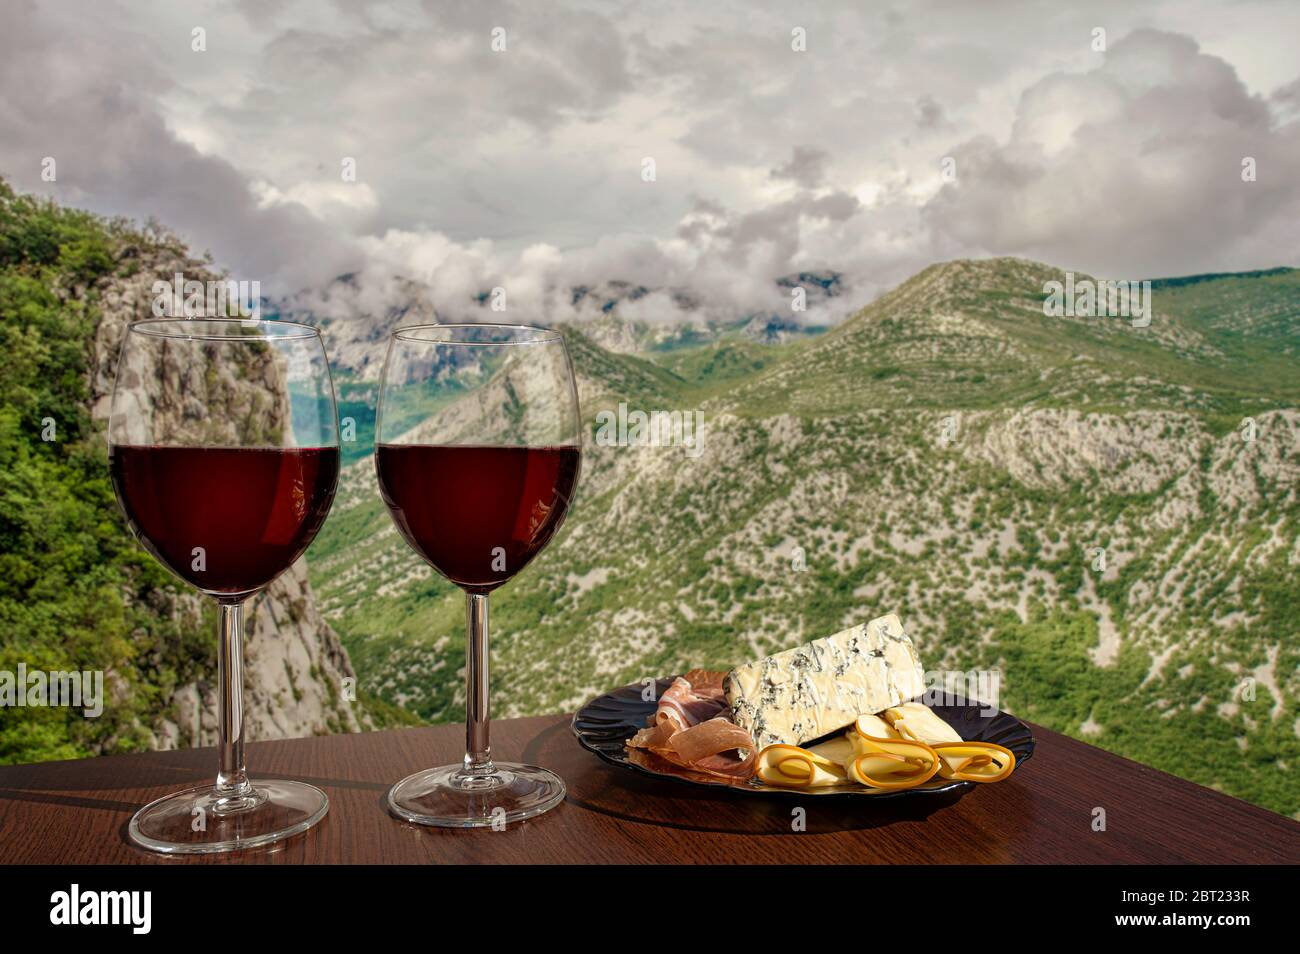 Two glasses of wine with charcuterie assortment on view of mountains with clouds in Croatia. Dinner in cafe or restaurant with mountains view. Stock Photo